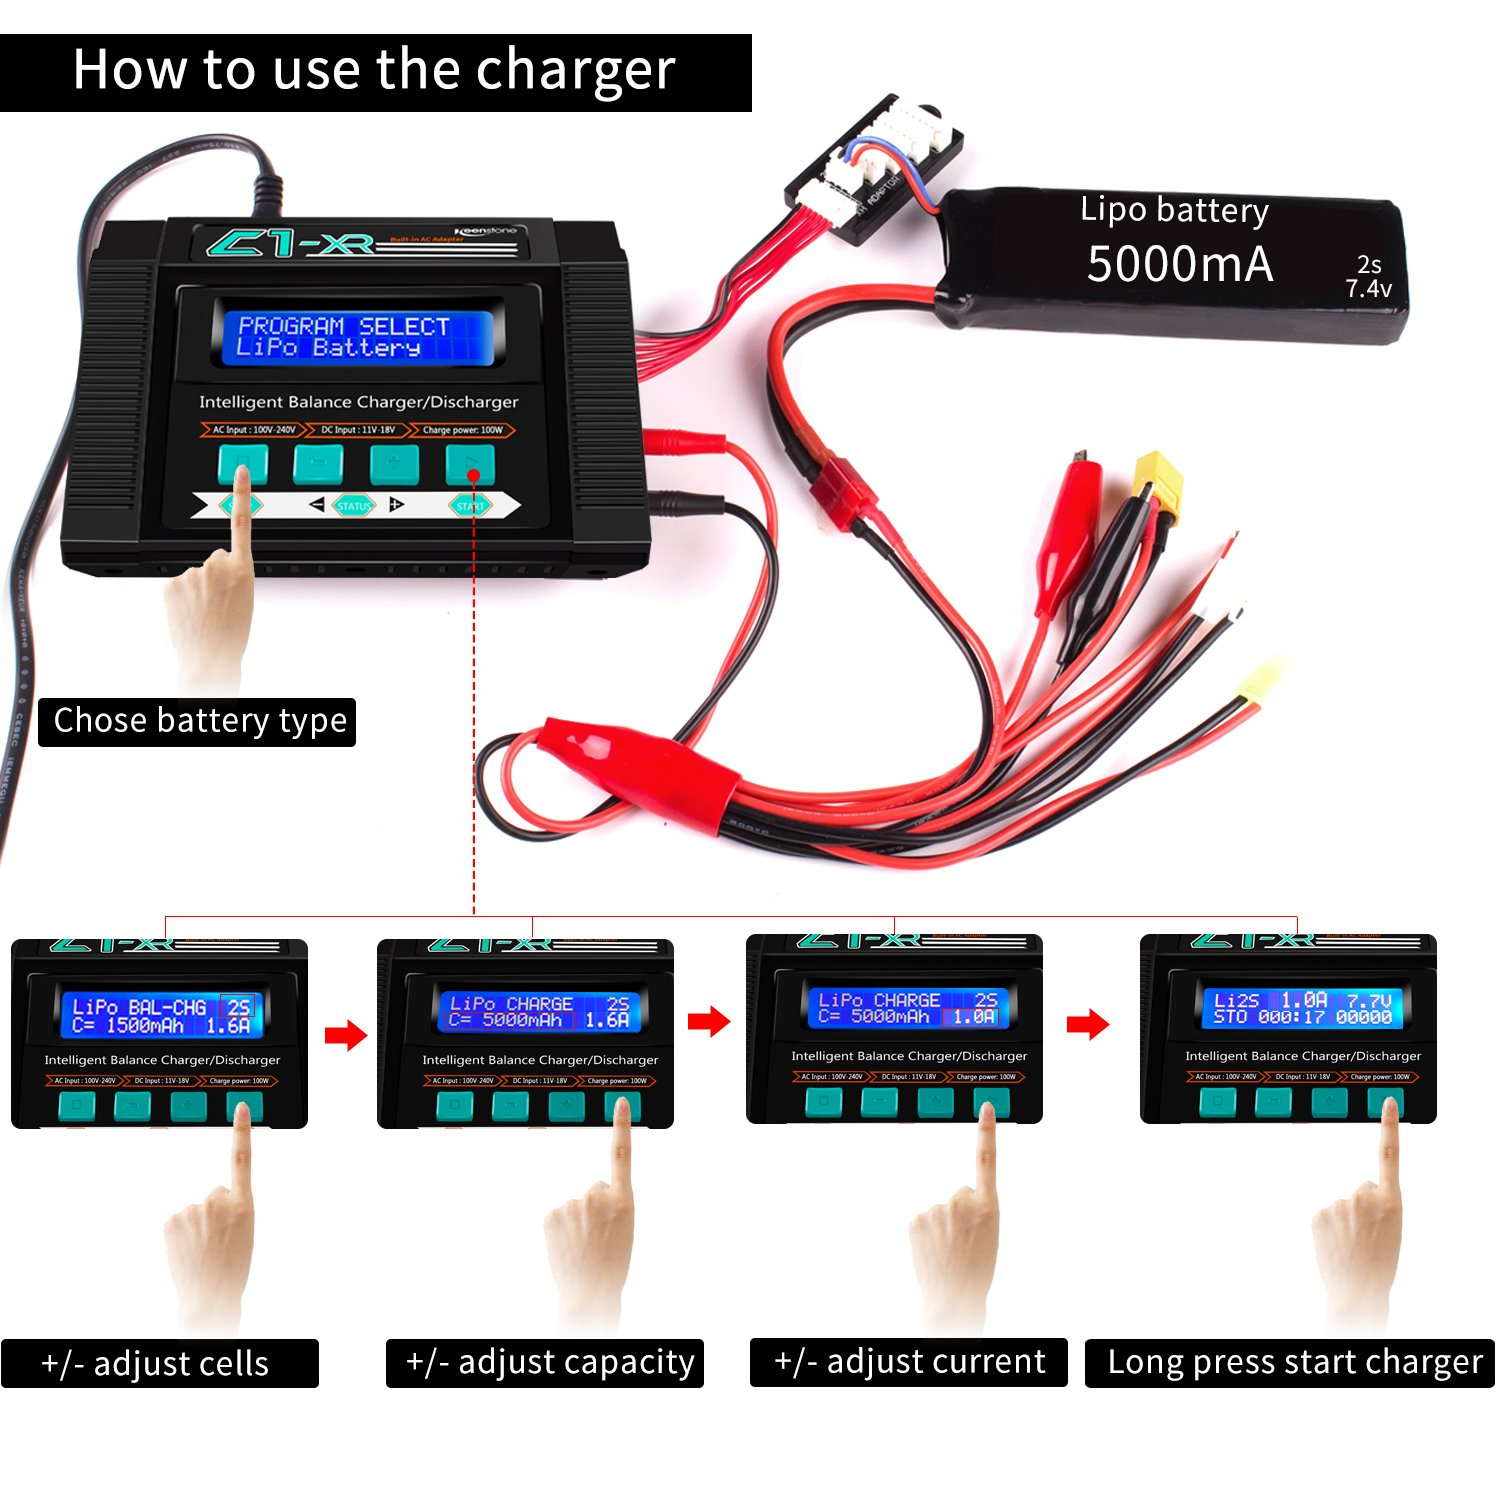 Keenstone Lipo Battery Charger Discharger with Low Voltage Checker 10A 100W AC/DC 1S-6S Digital Battery Pack Charger for Li-Po Li-Hv Li-Ion Li-Fe NiMH Ni-Cd Pb